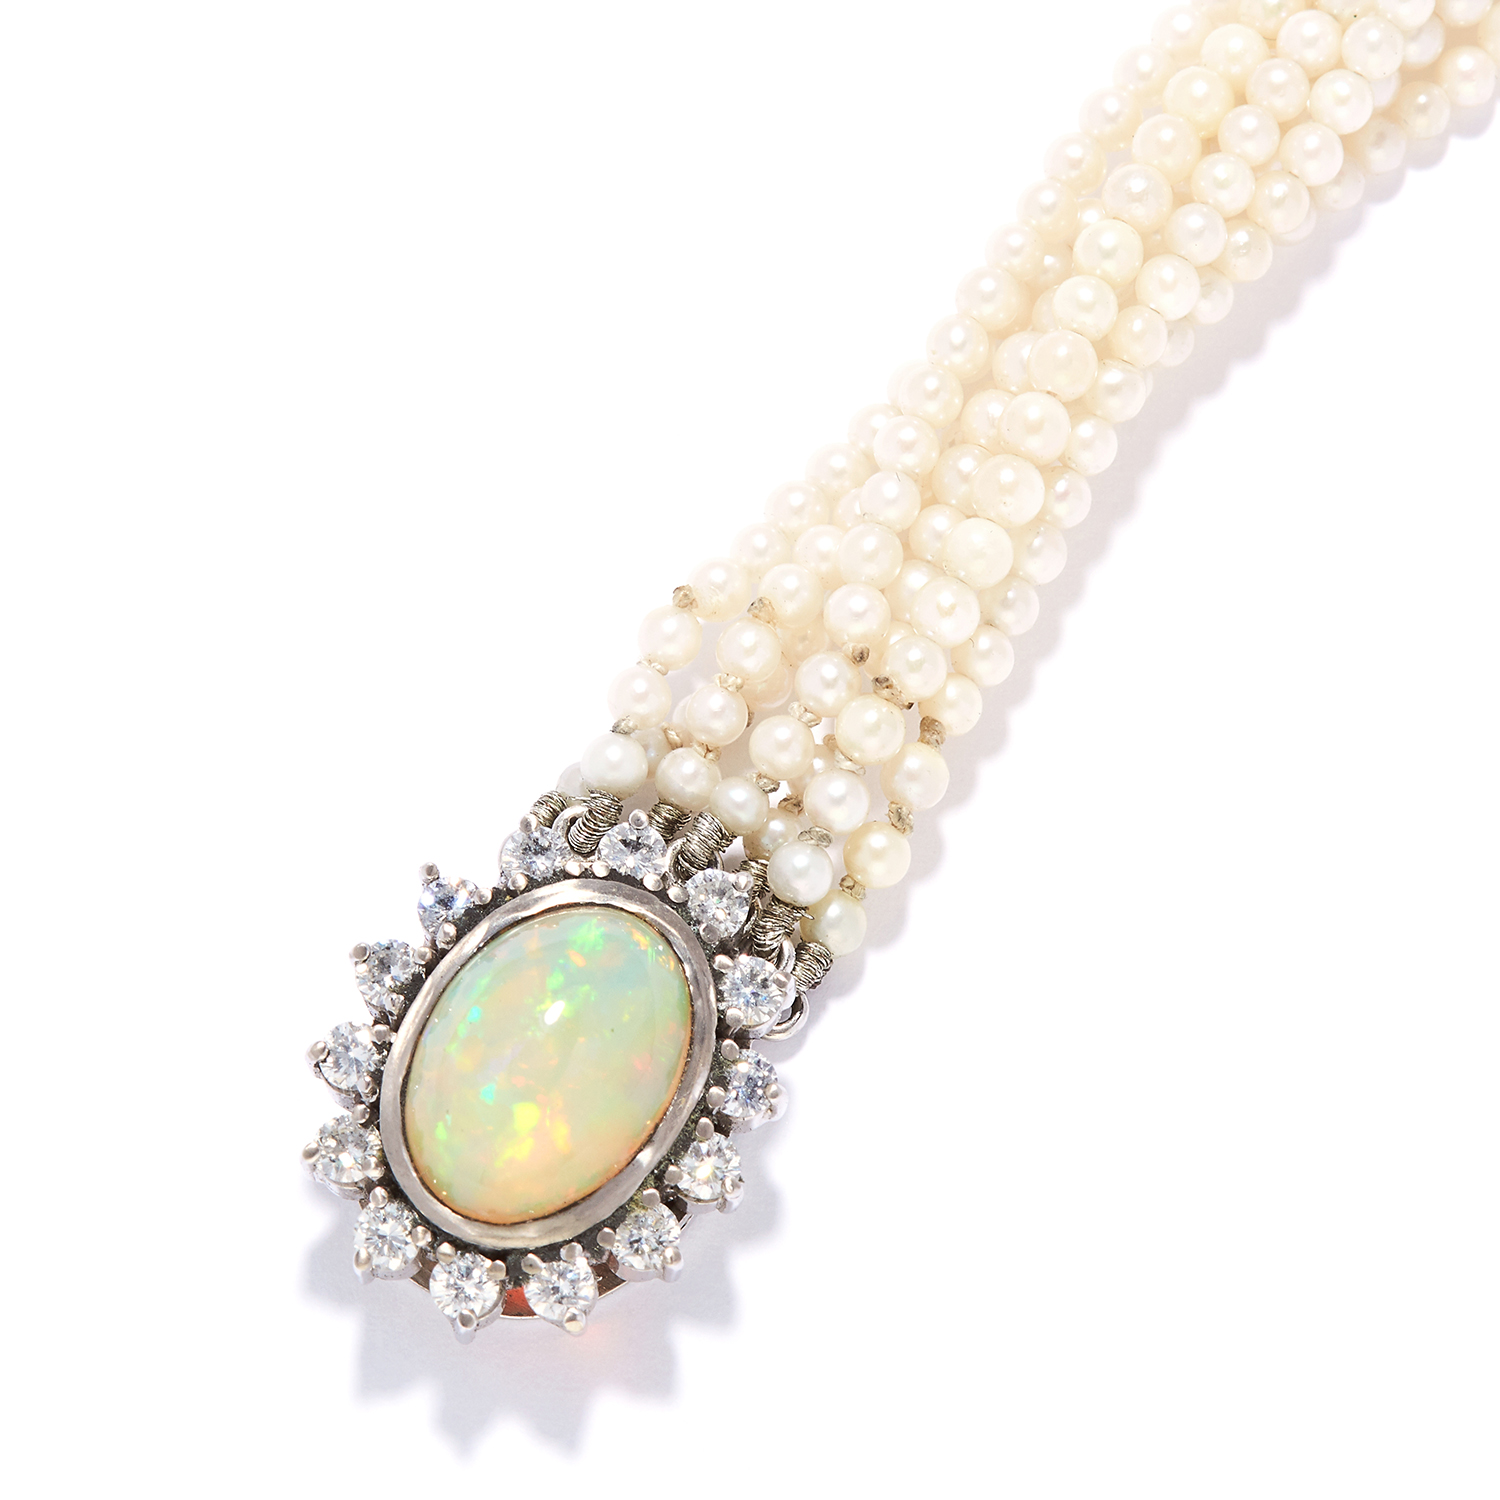 PEARL, OPAL AND DIAMOND BRACELET in white gold or platinum, comprising of seven rows of pearls - Bild 2 aus 2